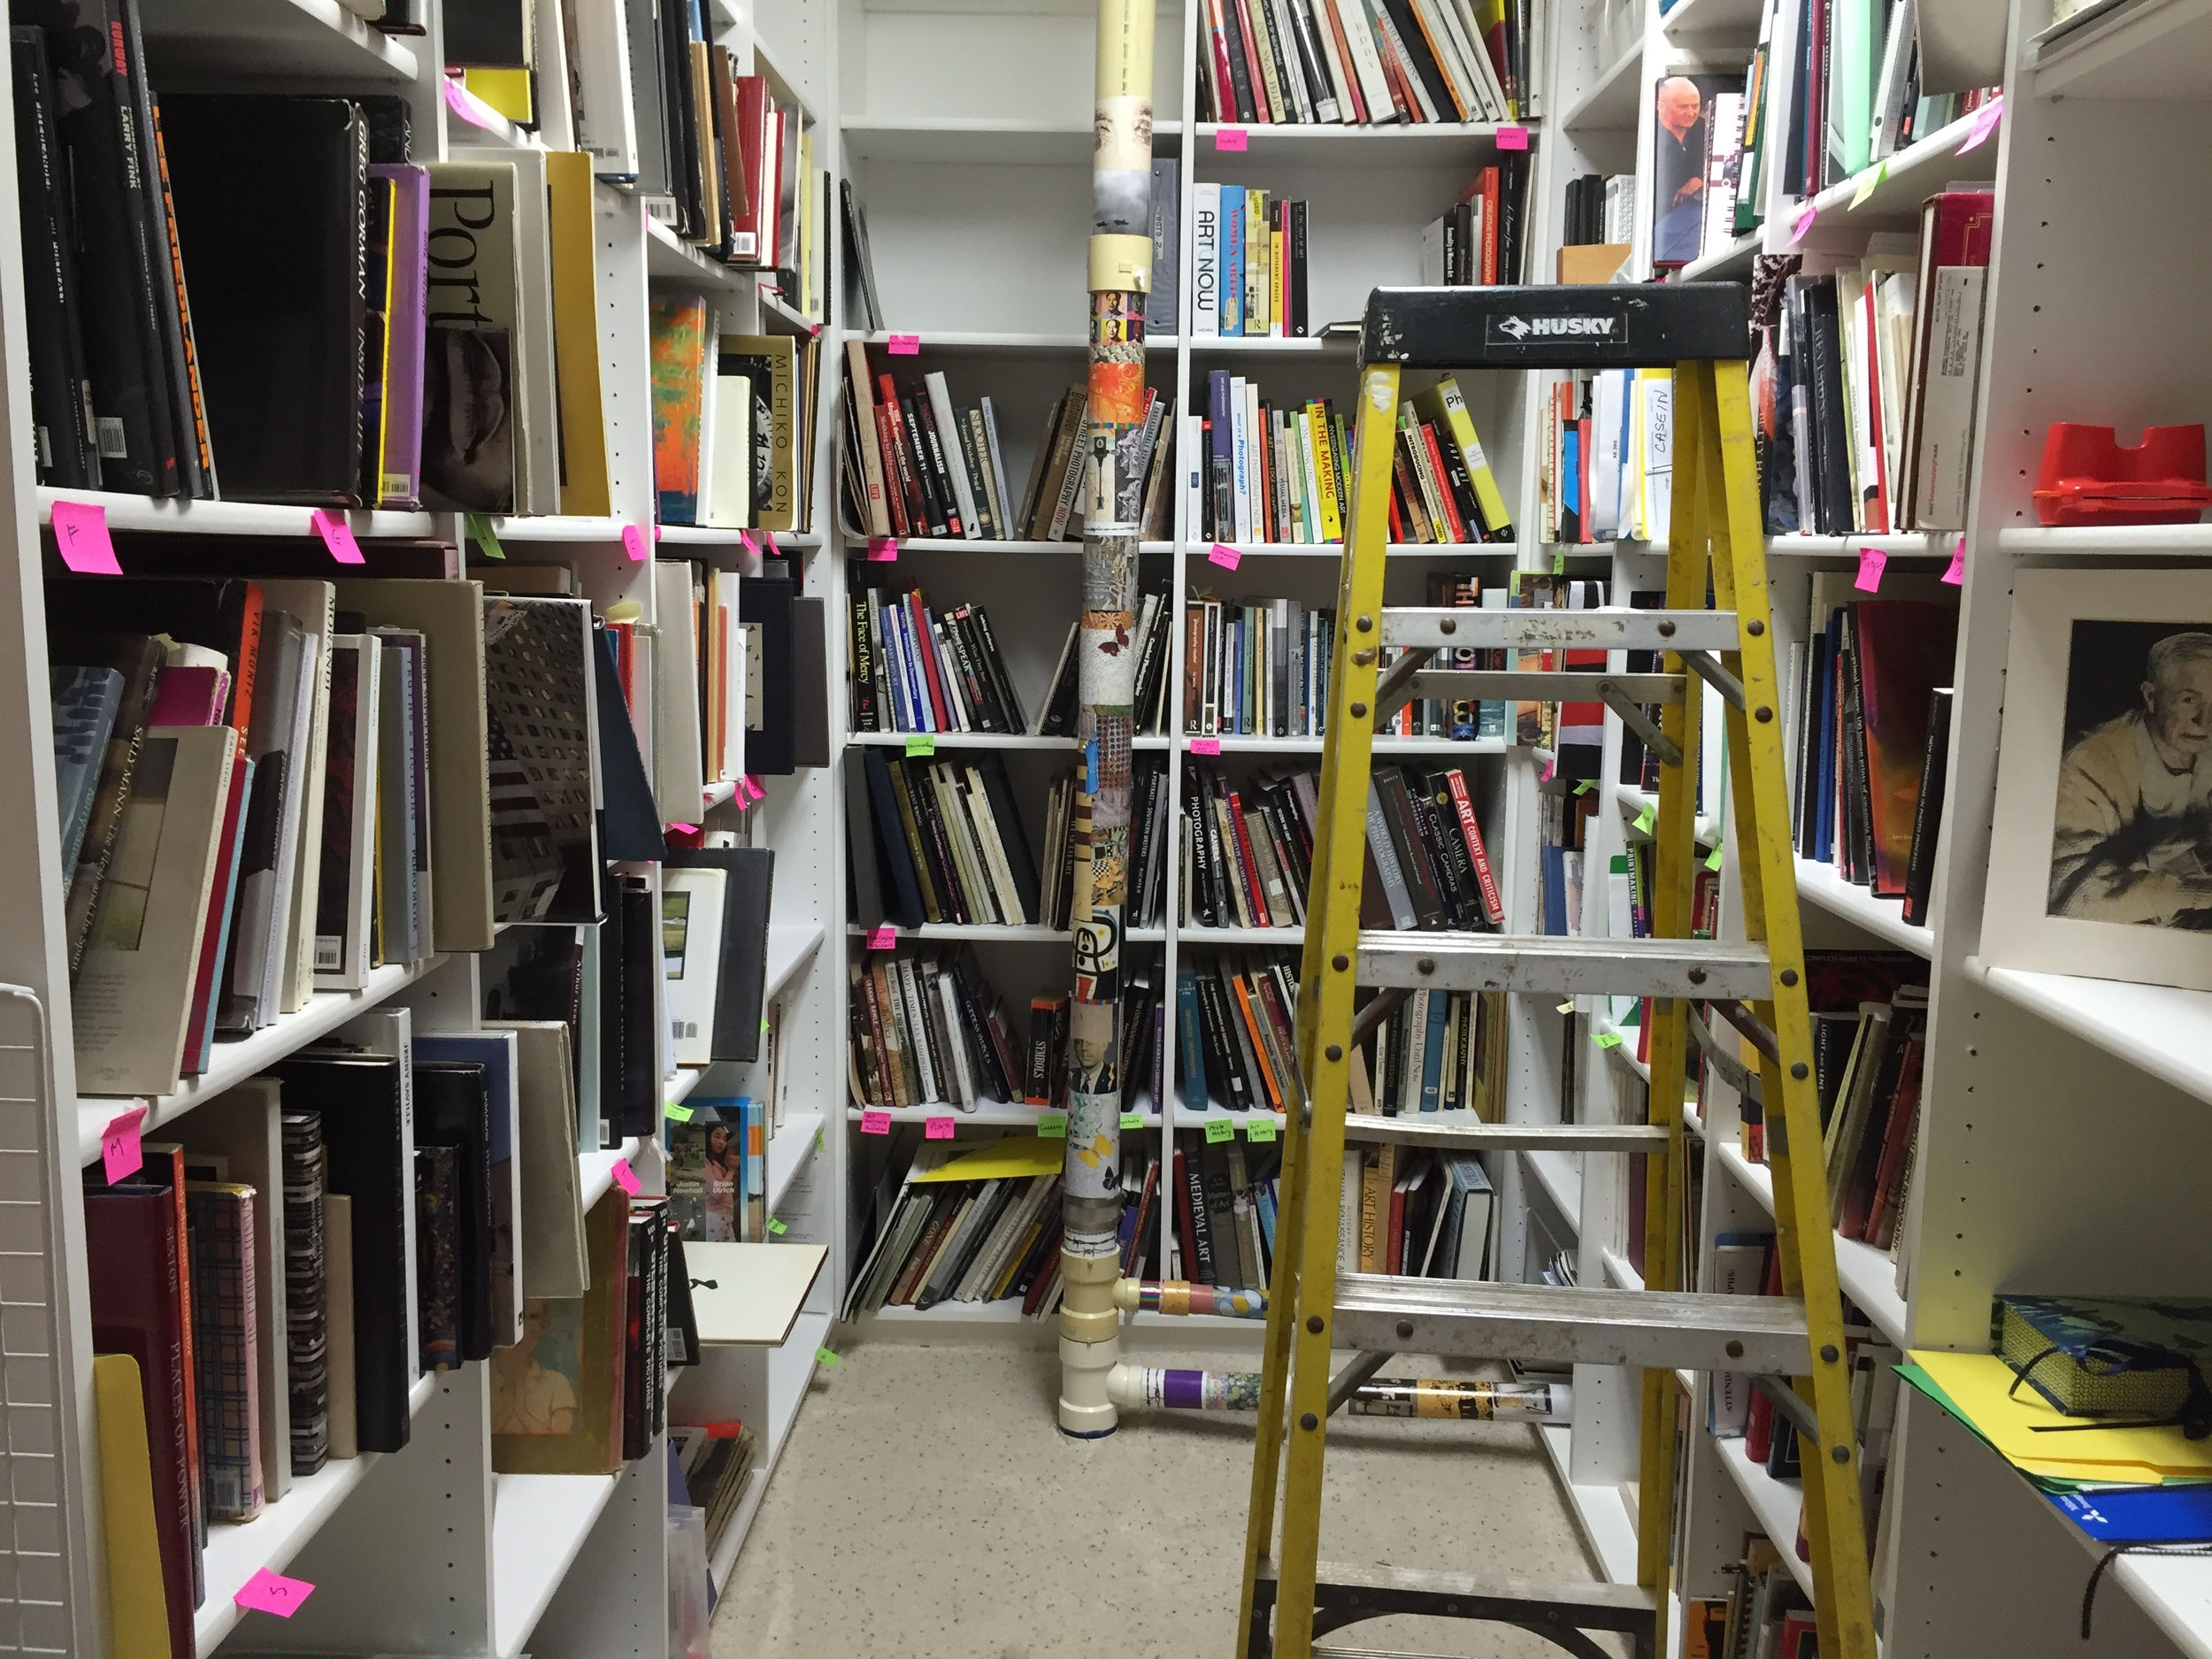 Over 1,200 photobooks in  Marydorsey Wanless ' library.